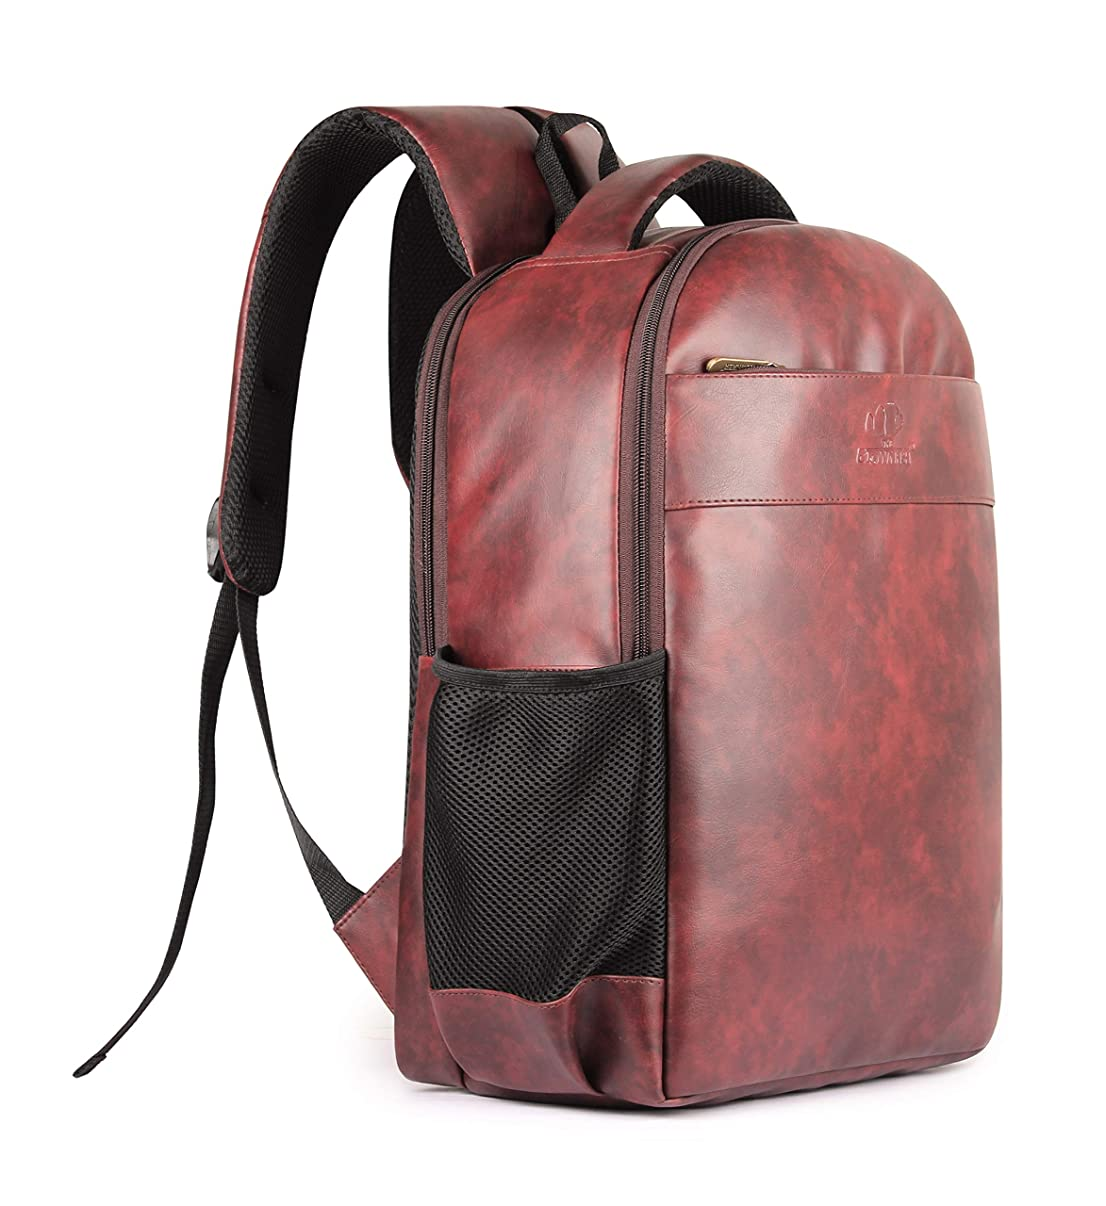 Rodimus 31 liters Backpack for Men | Laptop Bag | College Bag | 15.6 inch Laptop Bag |14 inch Laptop Bag (Wine Red)